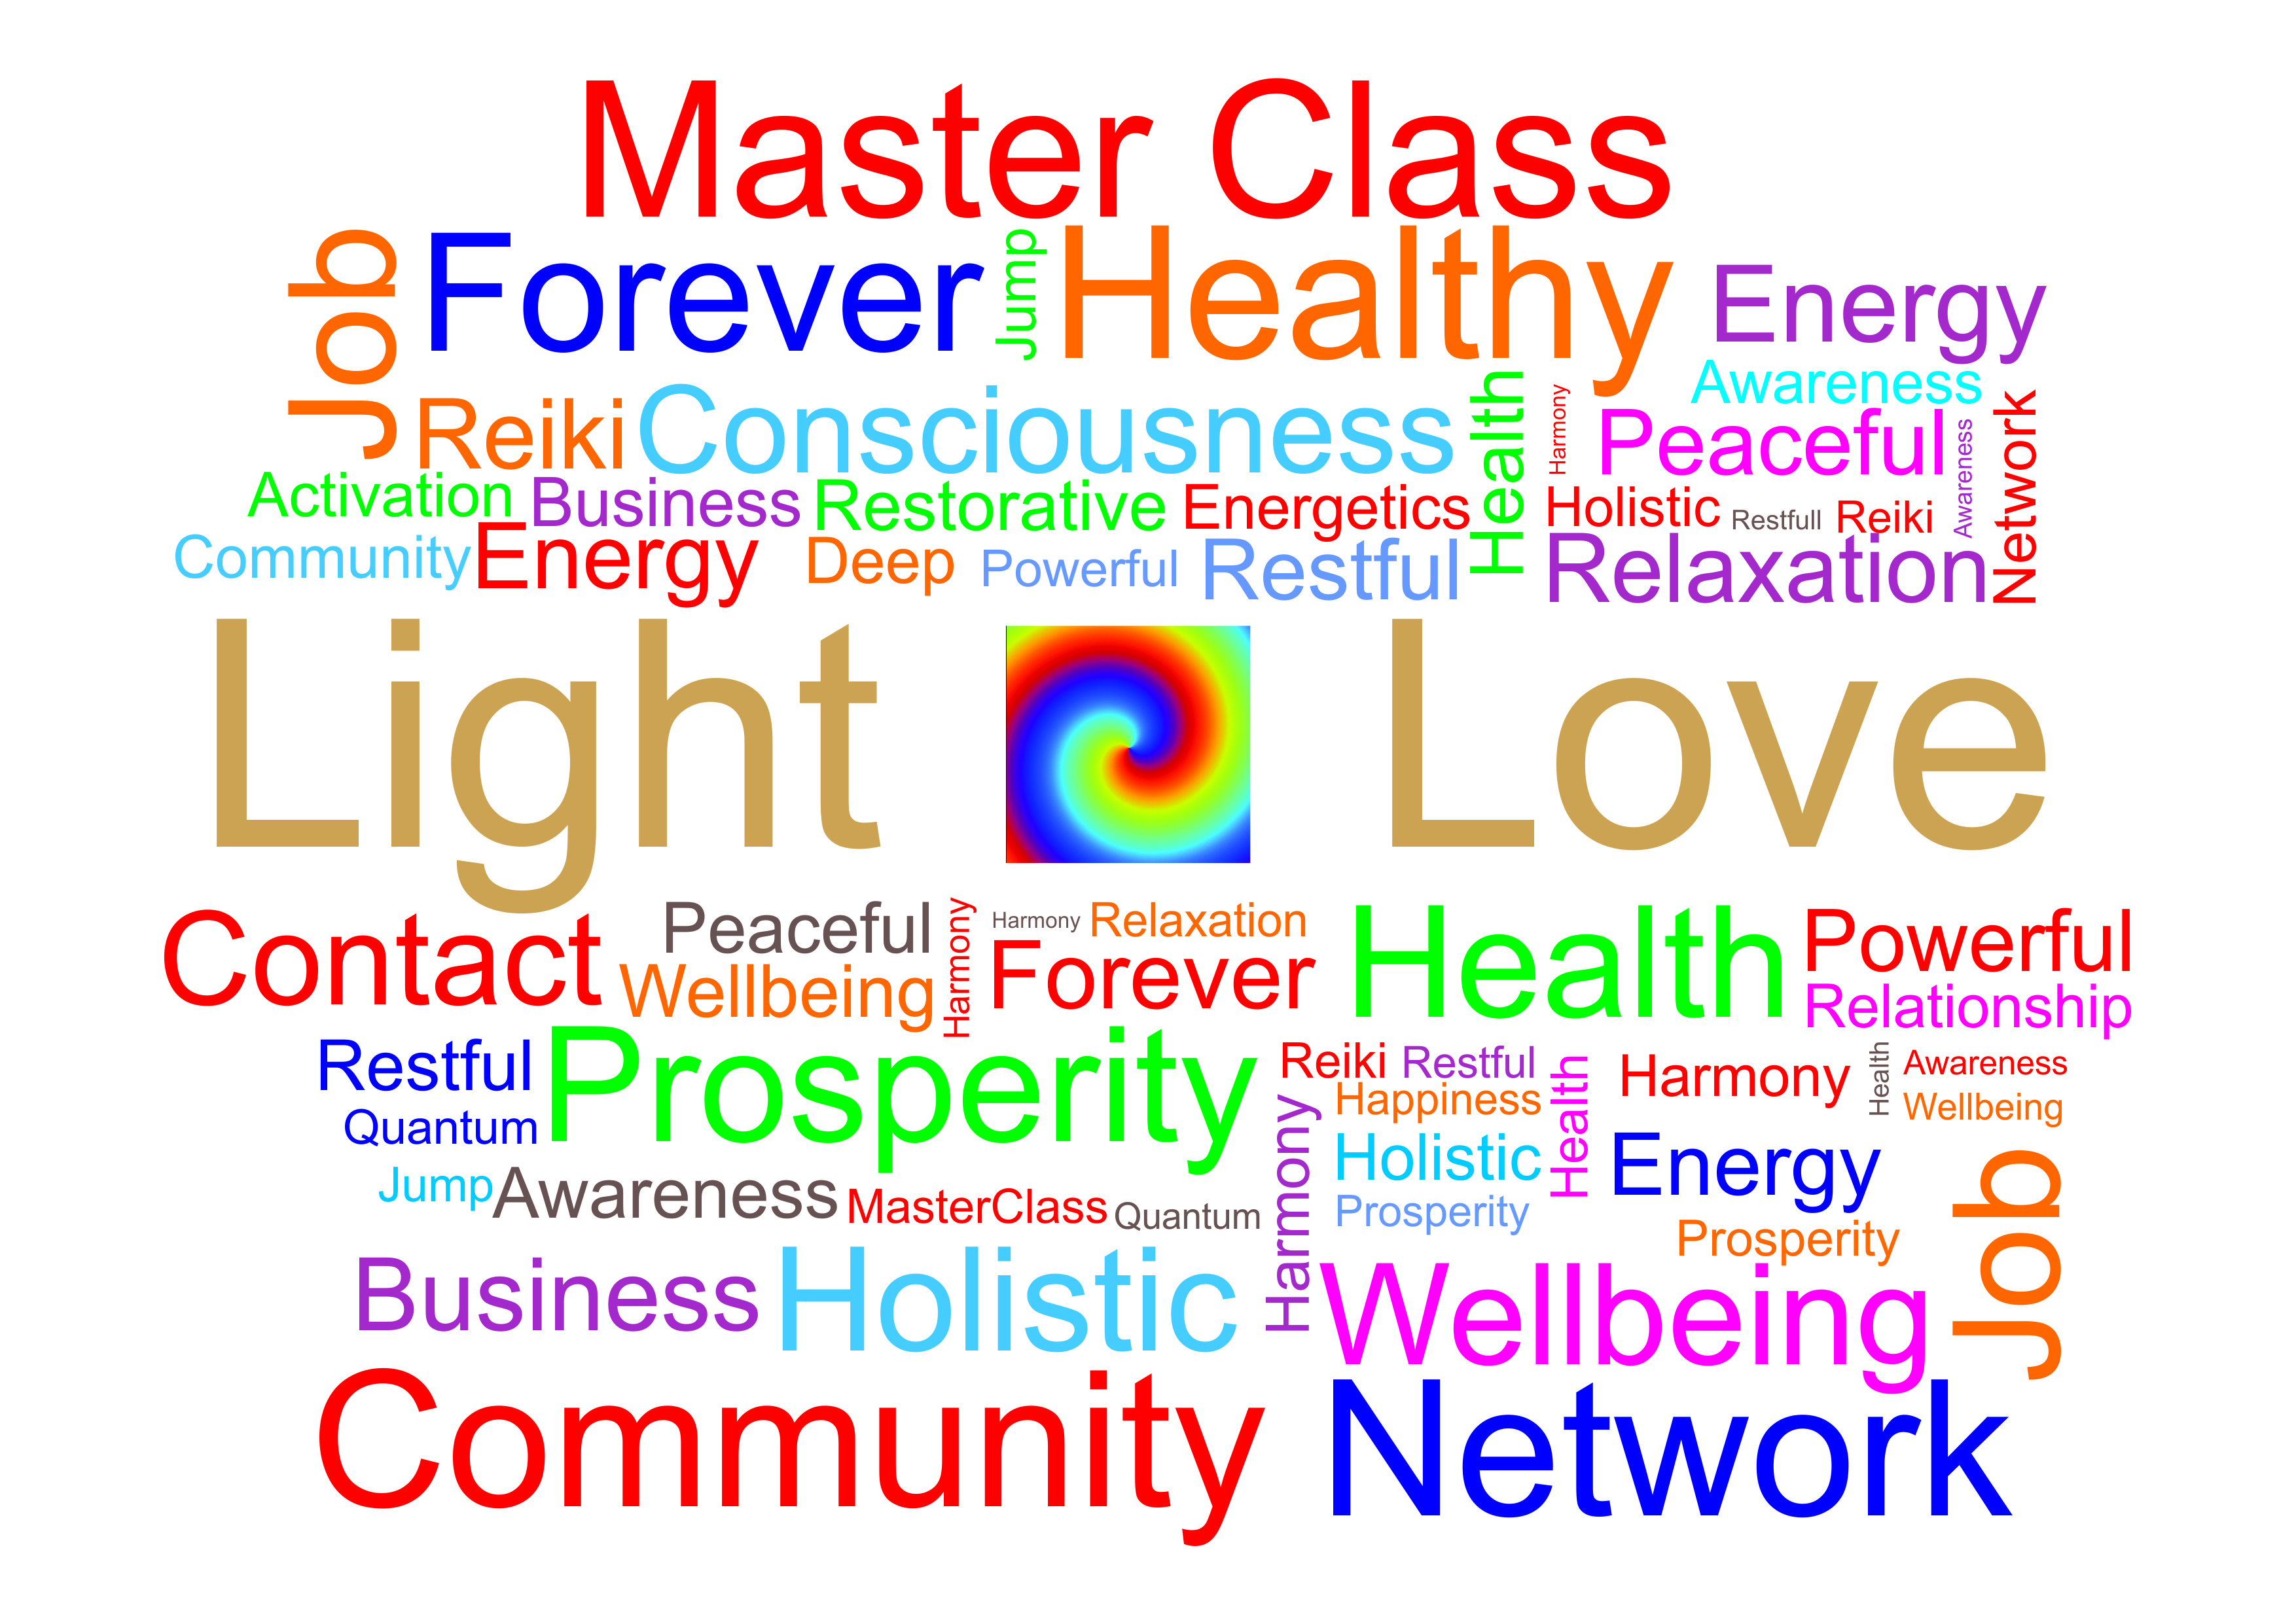 Masterclass Workshop Gathering of Light Live Life